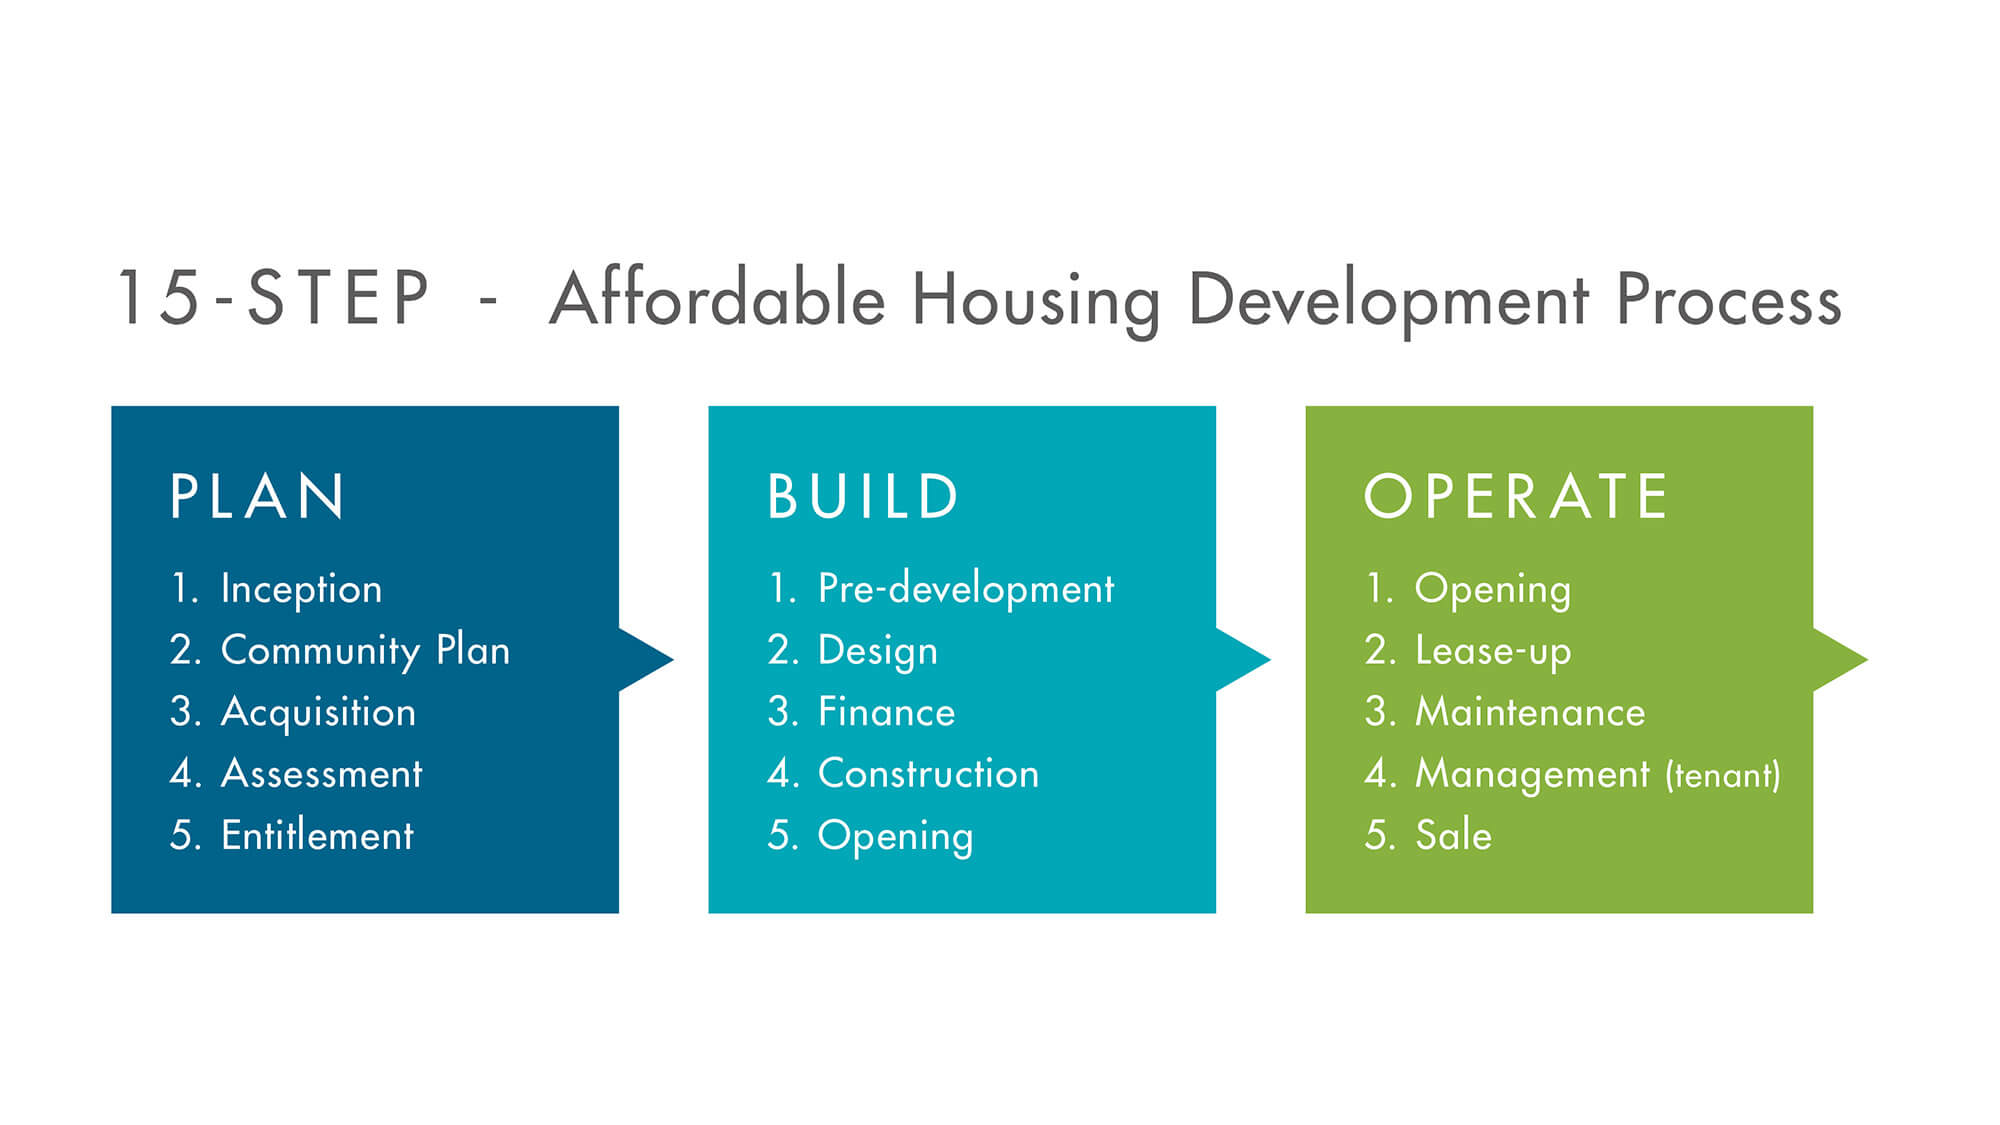 A 15 step affordable housing development process has 3 overarching steps: Plan, Build, Operate. The steps that make up Plan are: Inception, Community Plan, Acquisition, Assessment, and Entitlement. The steps that make up Build are: Pre-development, Design, Finance, Construction, Opening. Finally, the steps that make up Operate are: Opening, Lease-up, Maintenance, Management (tenant), and Sale.